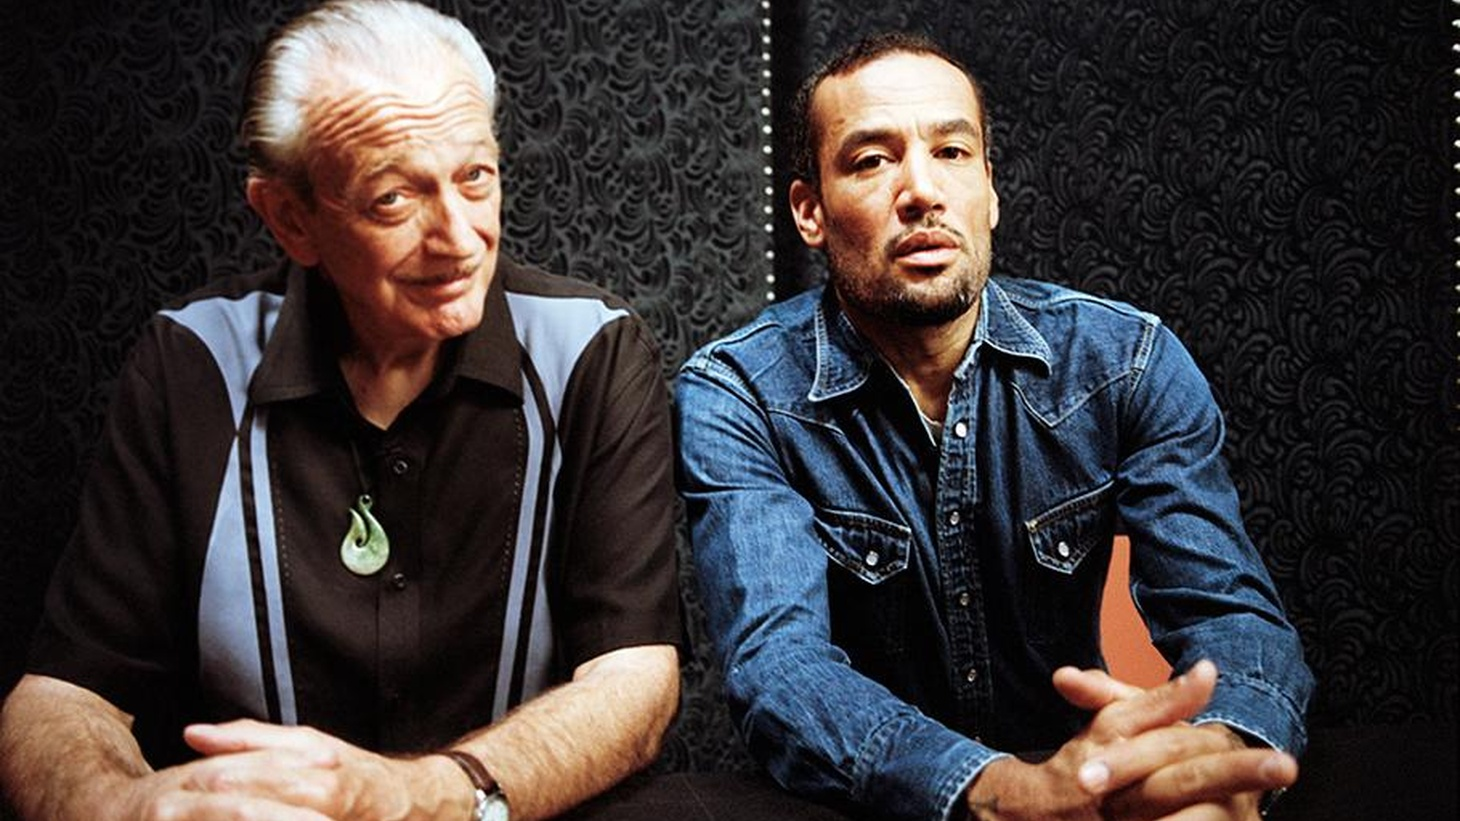 Ben Harper is no stranger to the blues. On his new record he teams up with an old friend and musical collaborator, harmonica legend Charlie Musselwhite.